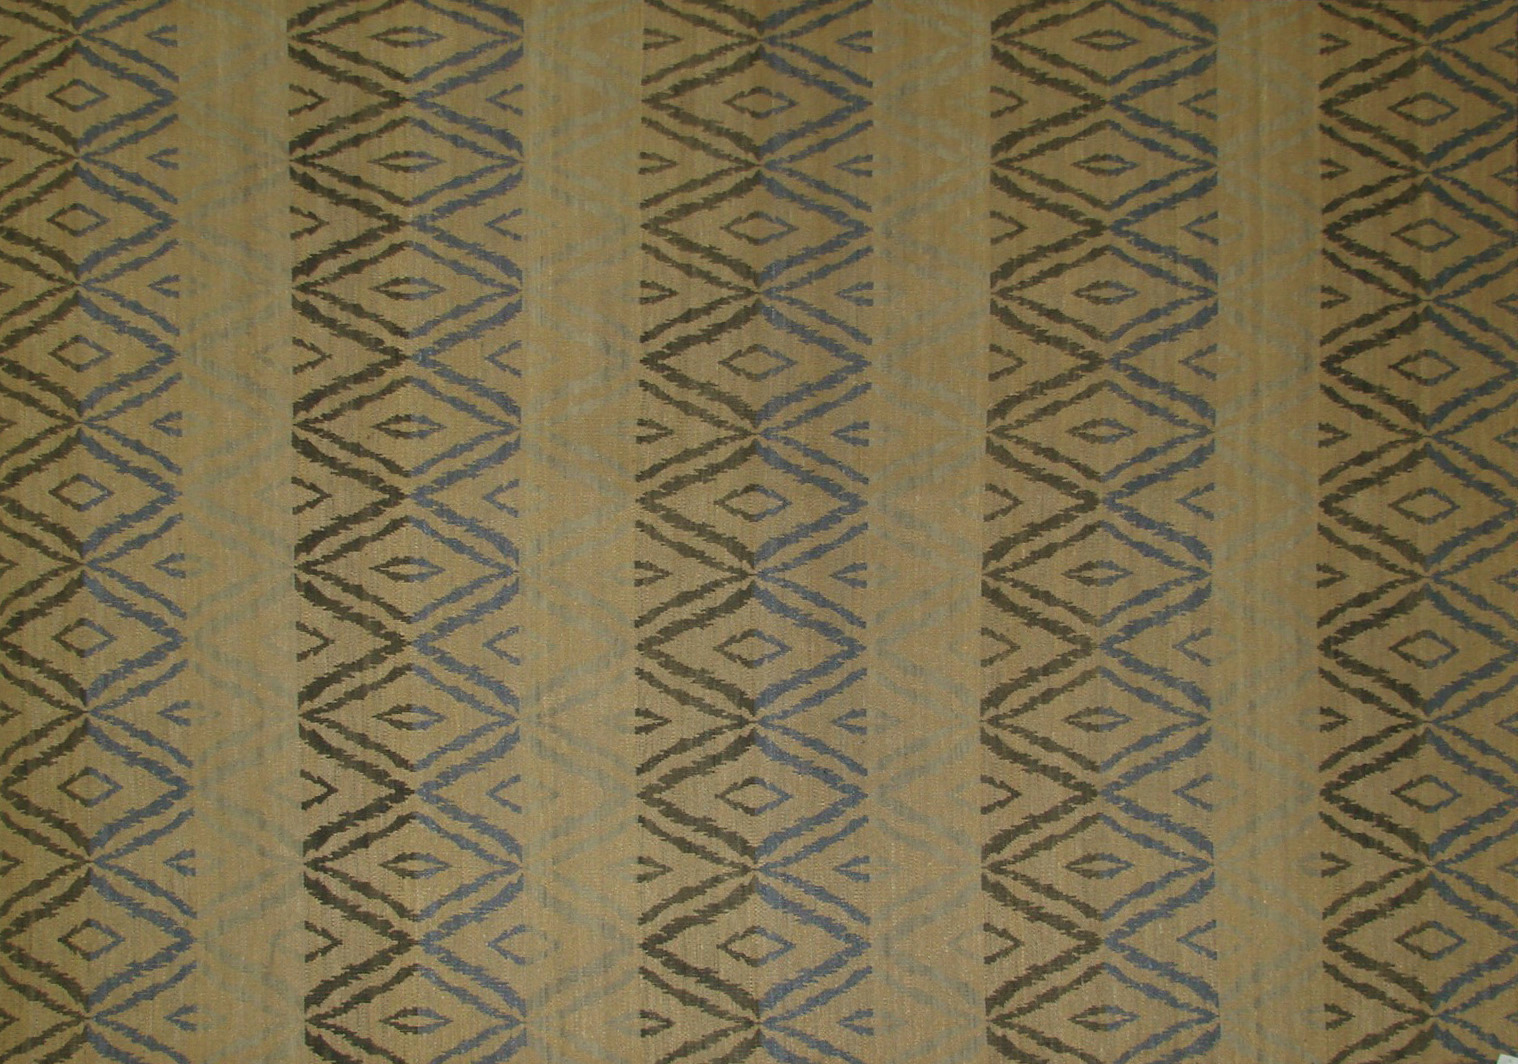 9x12 Flat Weave Hand Knotted Wool Area Rug - MR21022